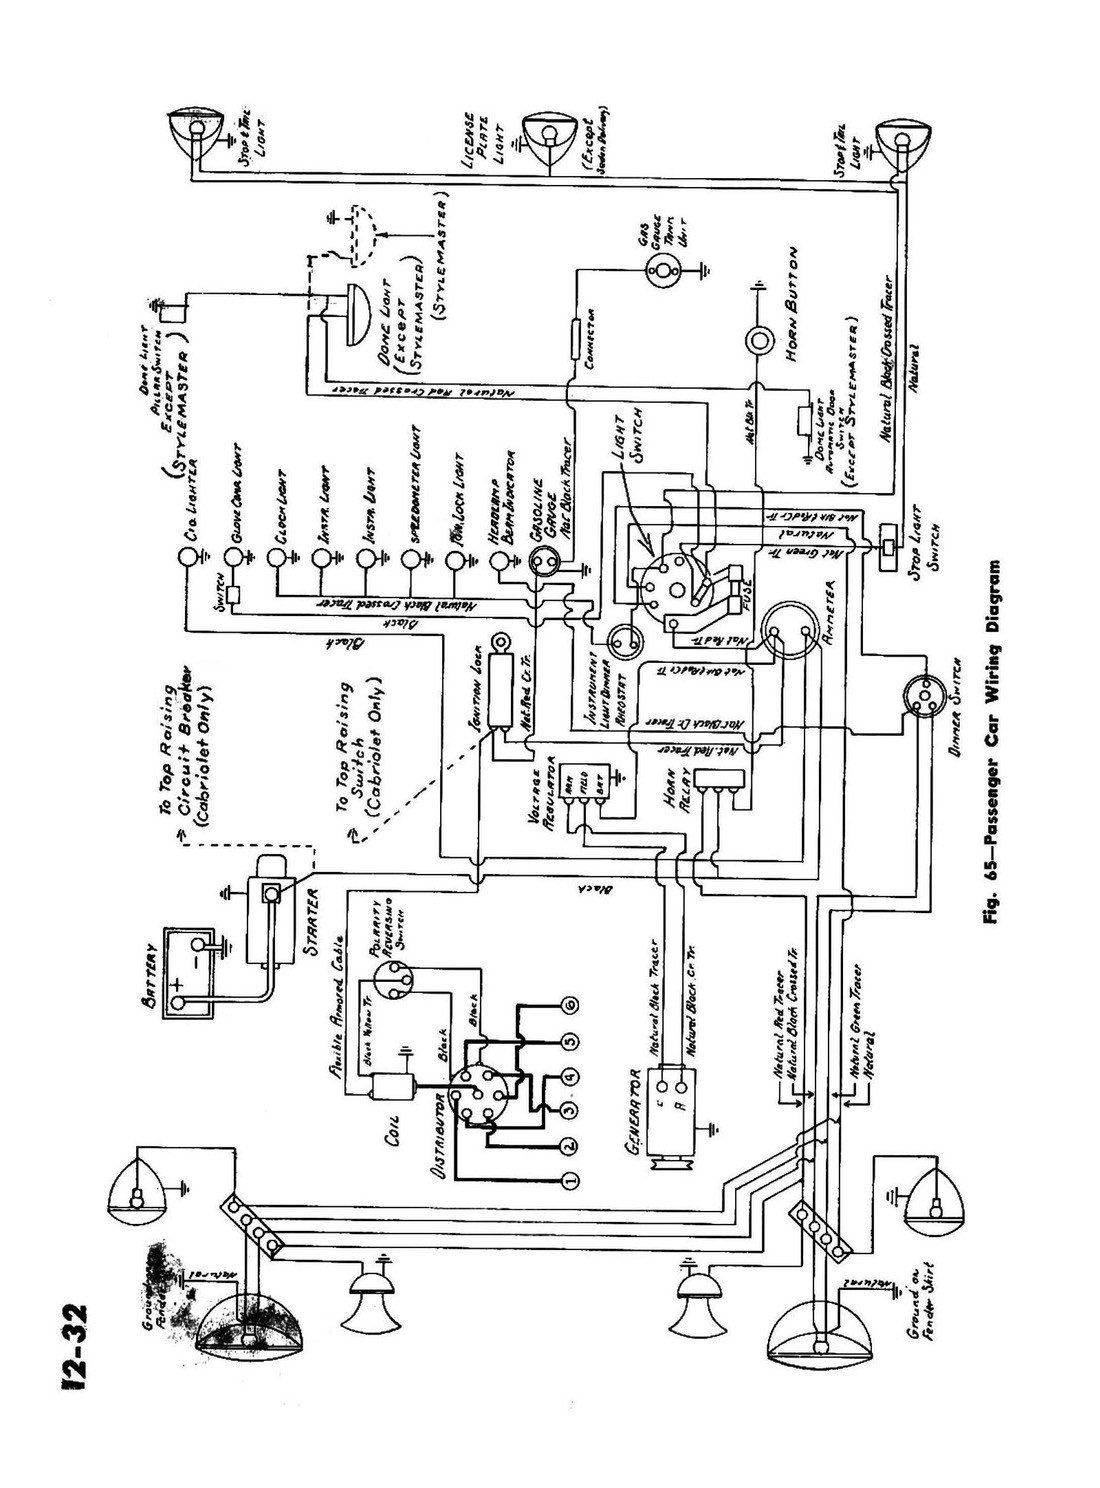 How Do You Draw An Electrical Circuit Diagram